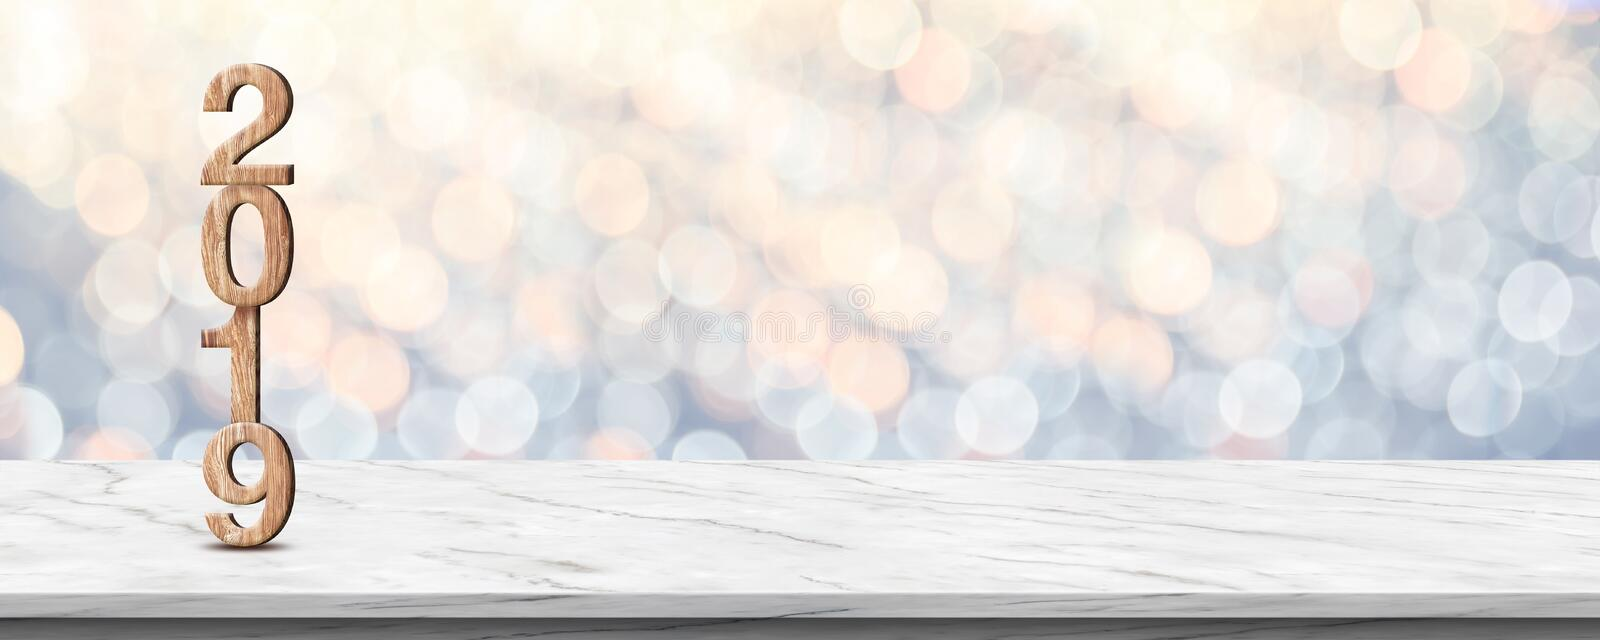 Happy new year 2019 3d rendering wood texture on white marble royalty free stock photography